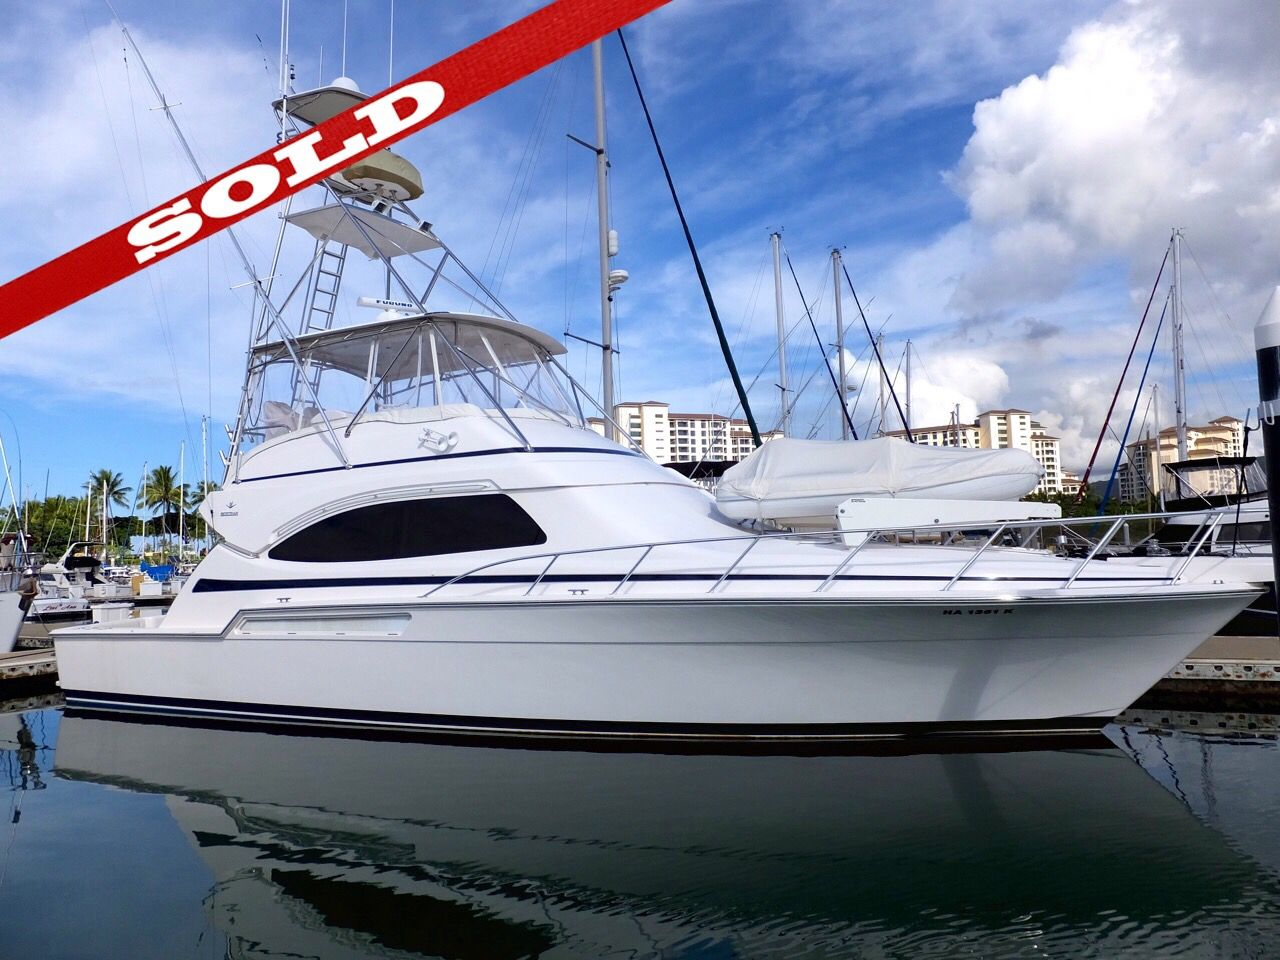 51 Bertram sold by Kusler yachts Hawaii Yacht for sale